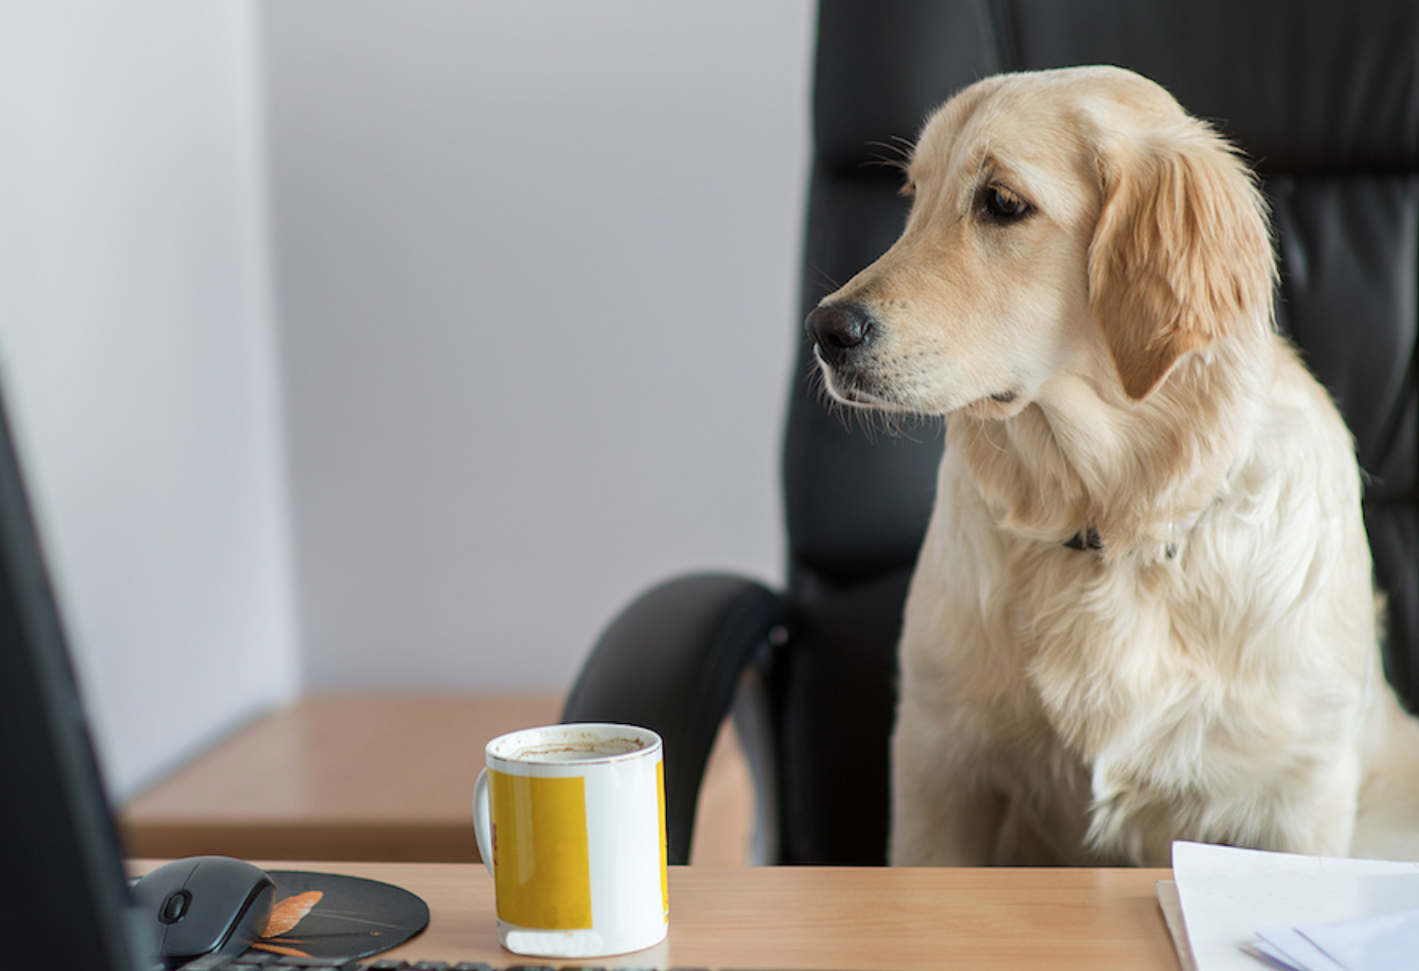 A hard-working professional dog at its desk.